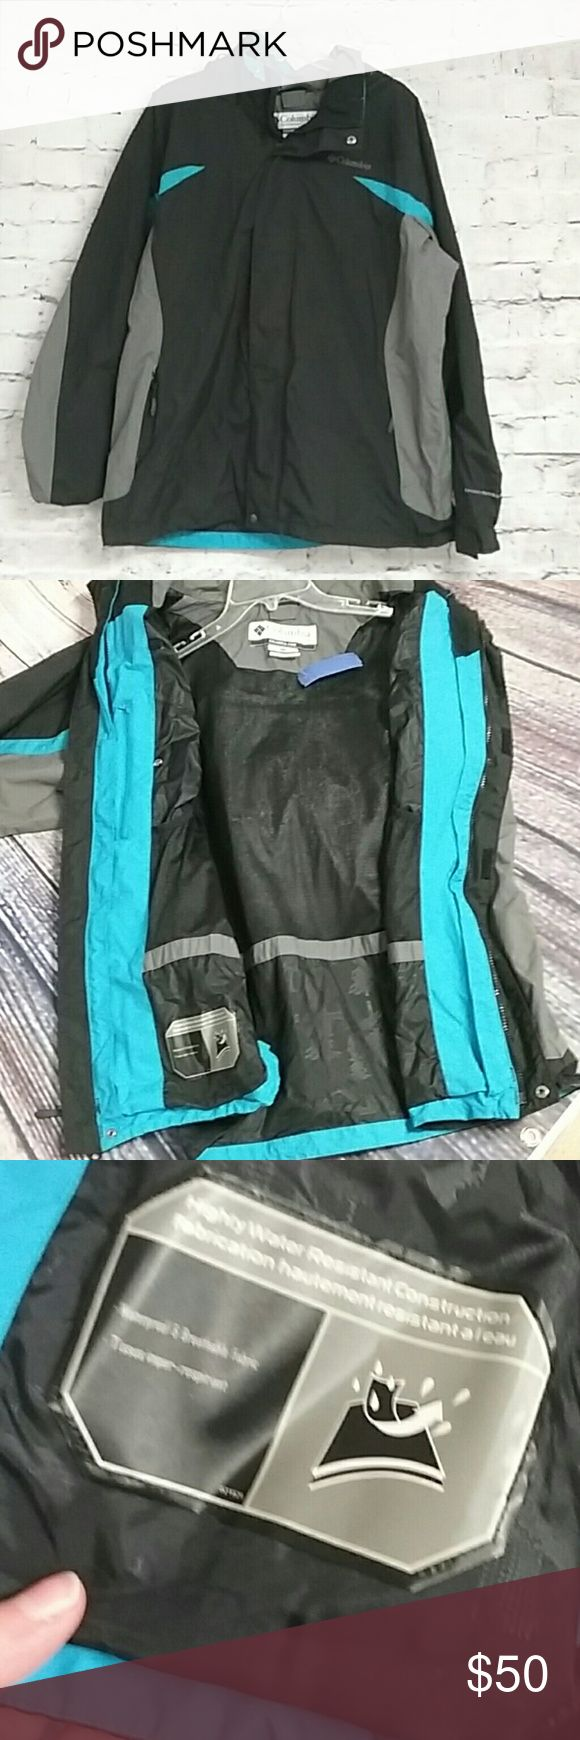 HOST PICK! Men's Columbia water resistant jacket Excellent condition Men's Columbia Sportswear company jacket. Tag says that it is water resistant and breathable. Size Large   Please feel free to check out my other items in my closet. Fast shipping and deals on bundles. Will consider all reasonable offers. Columbia Sportswear Company  Jackets & Coats Raincoats